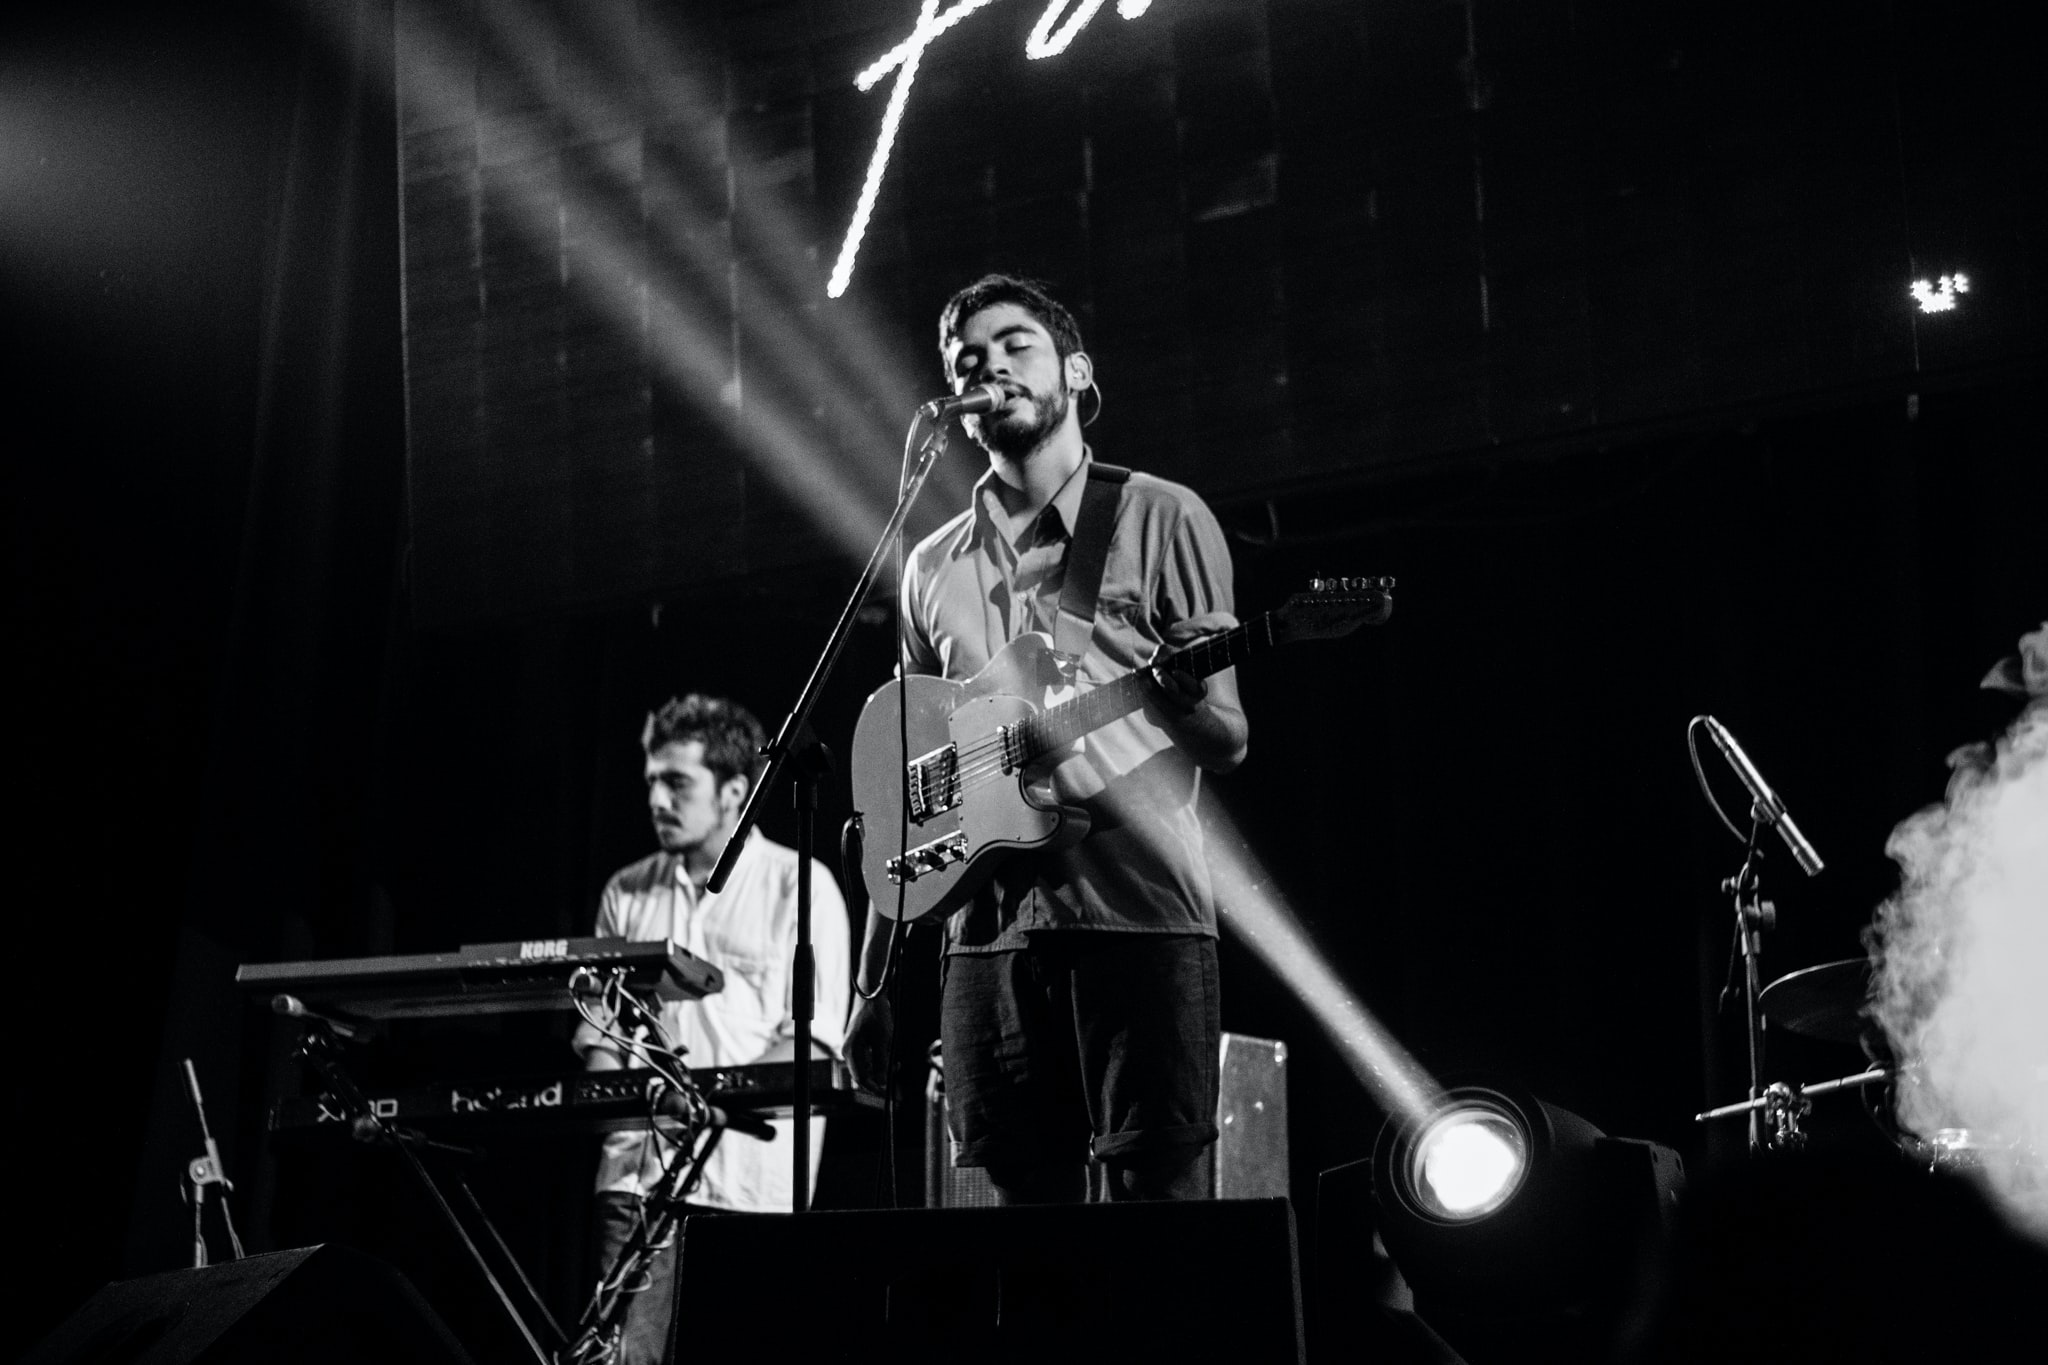 A black-and-white photo of a male singer holding a guitar with a keyboard player in the background